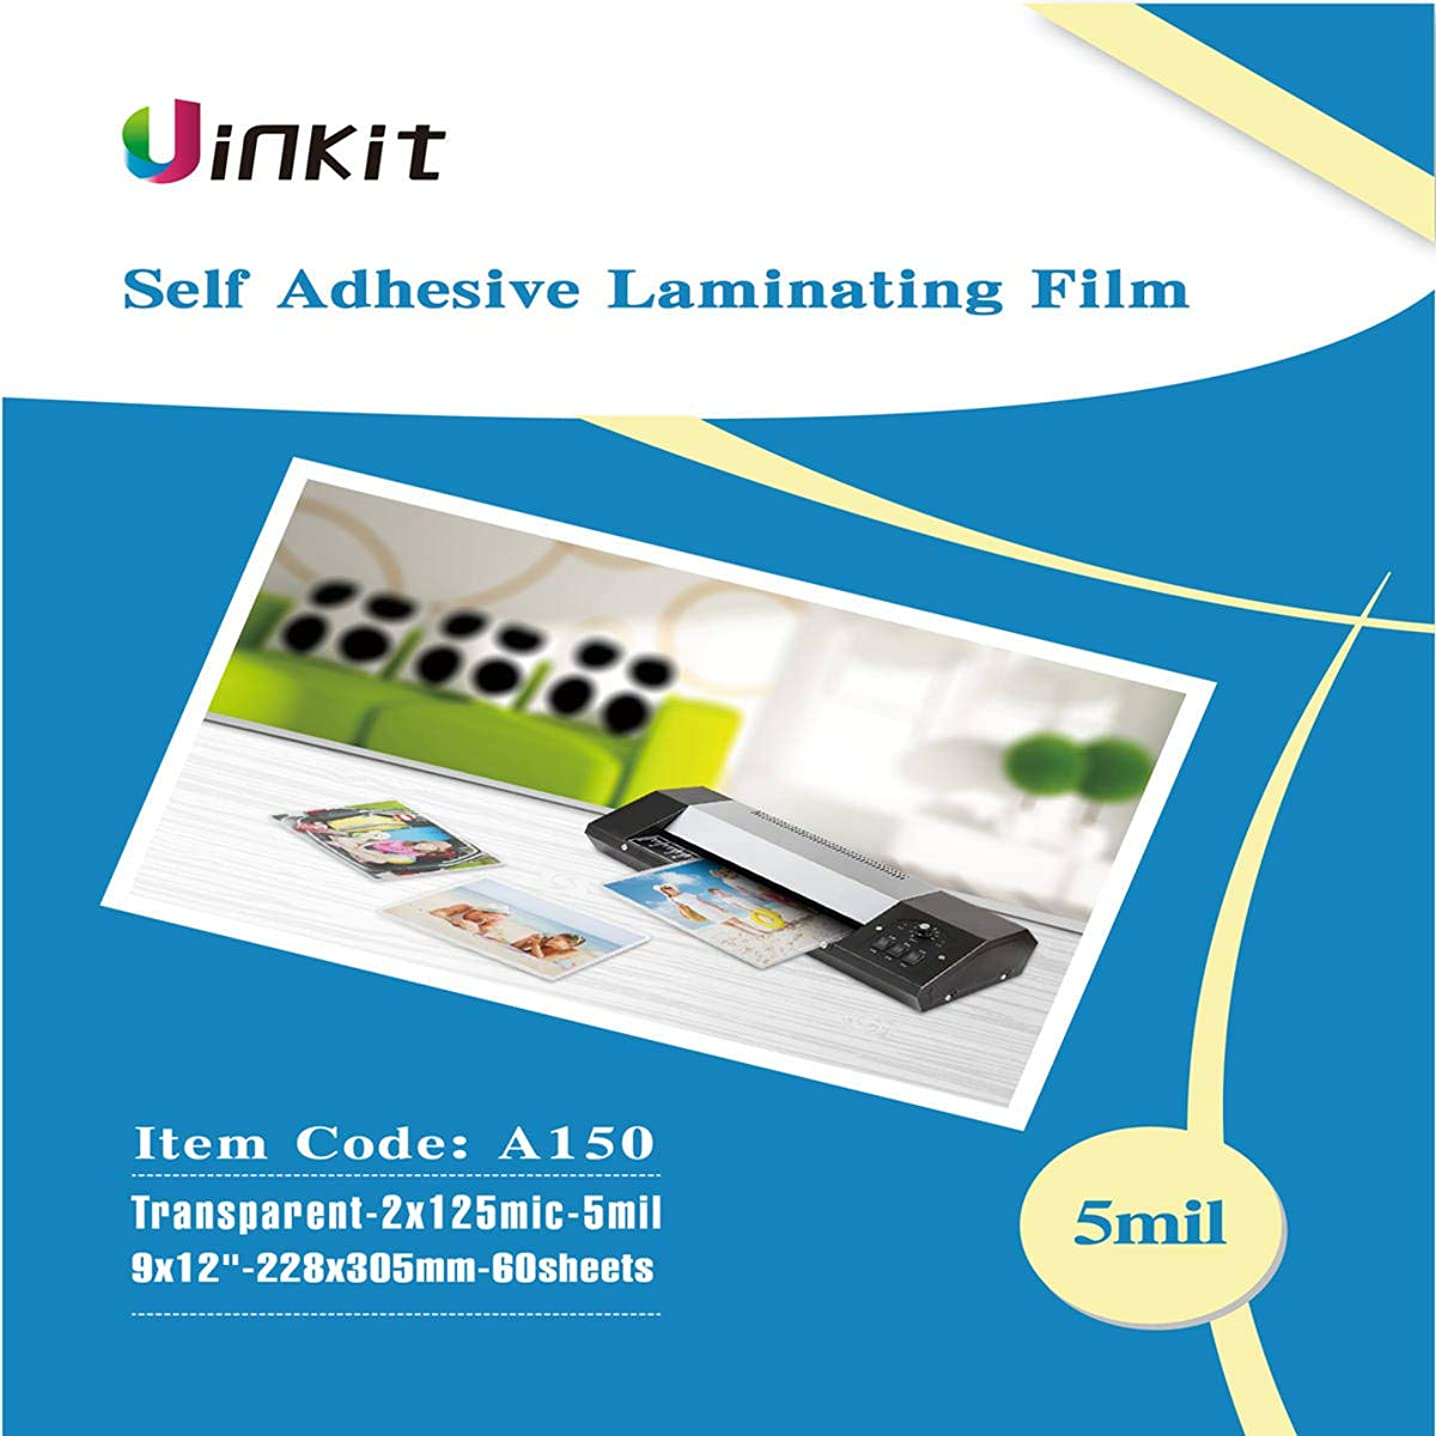 Sticky Hot Thermal Adhesive Laminating Pouches 9x12-60Sheets Backside Sticky 5Mil Pouches for Sealed 8.5x11 Inches Photo Uinkit